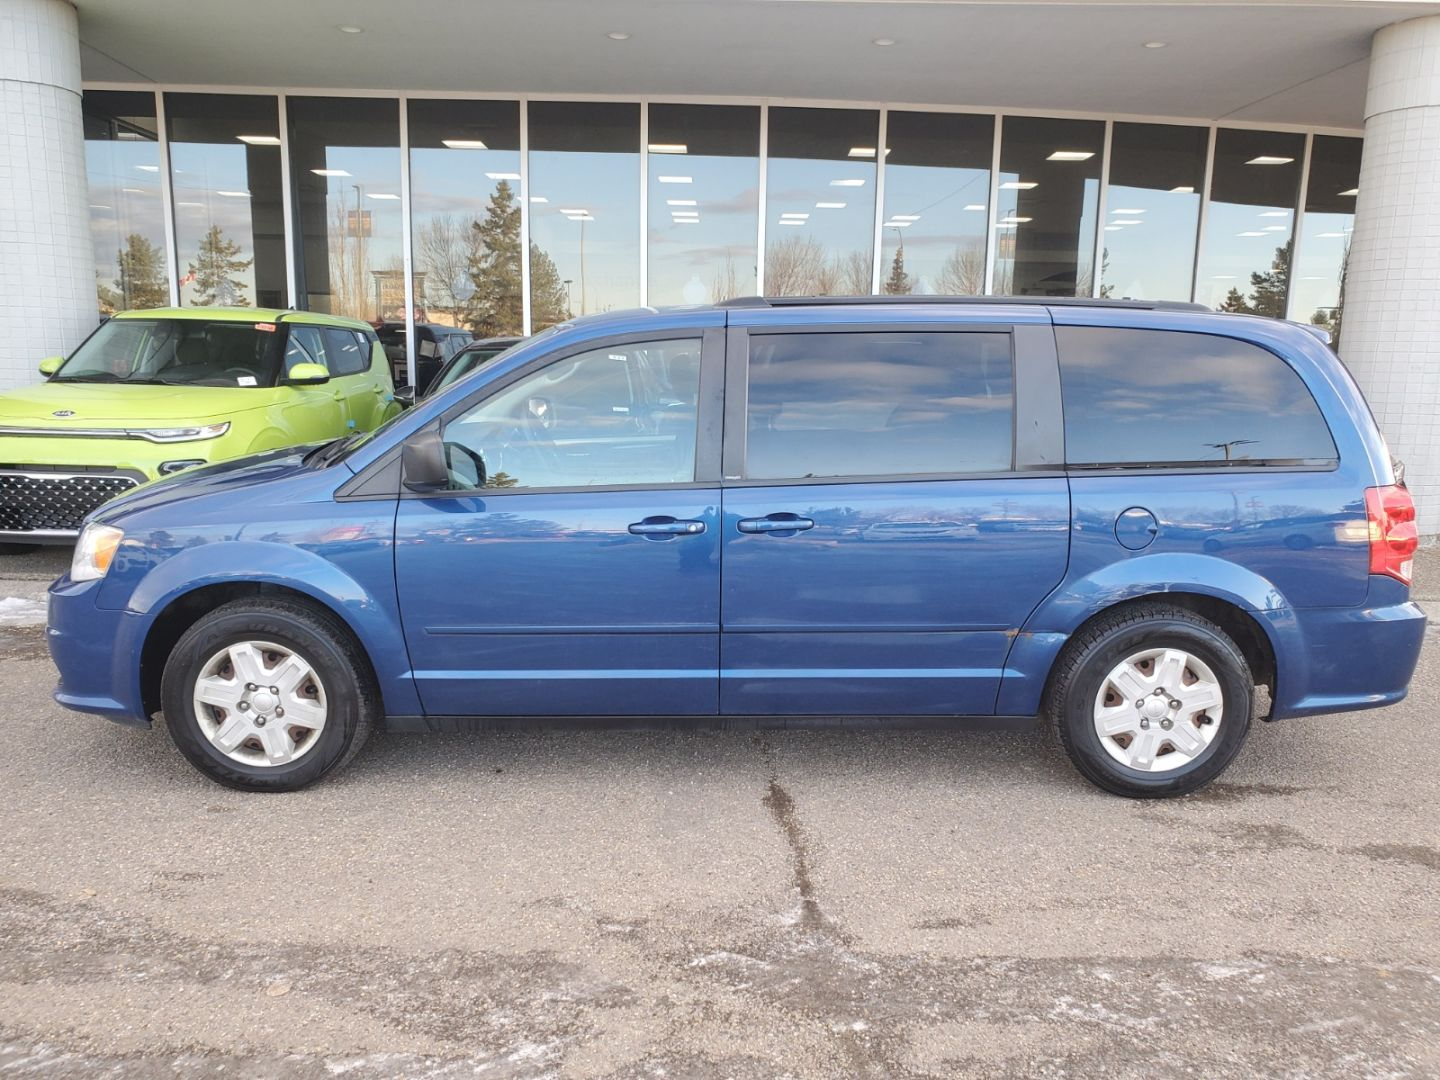 2011 Dodge Grand Caravan Express for sale in Edmonton, Alberta